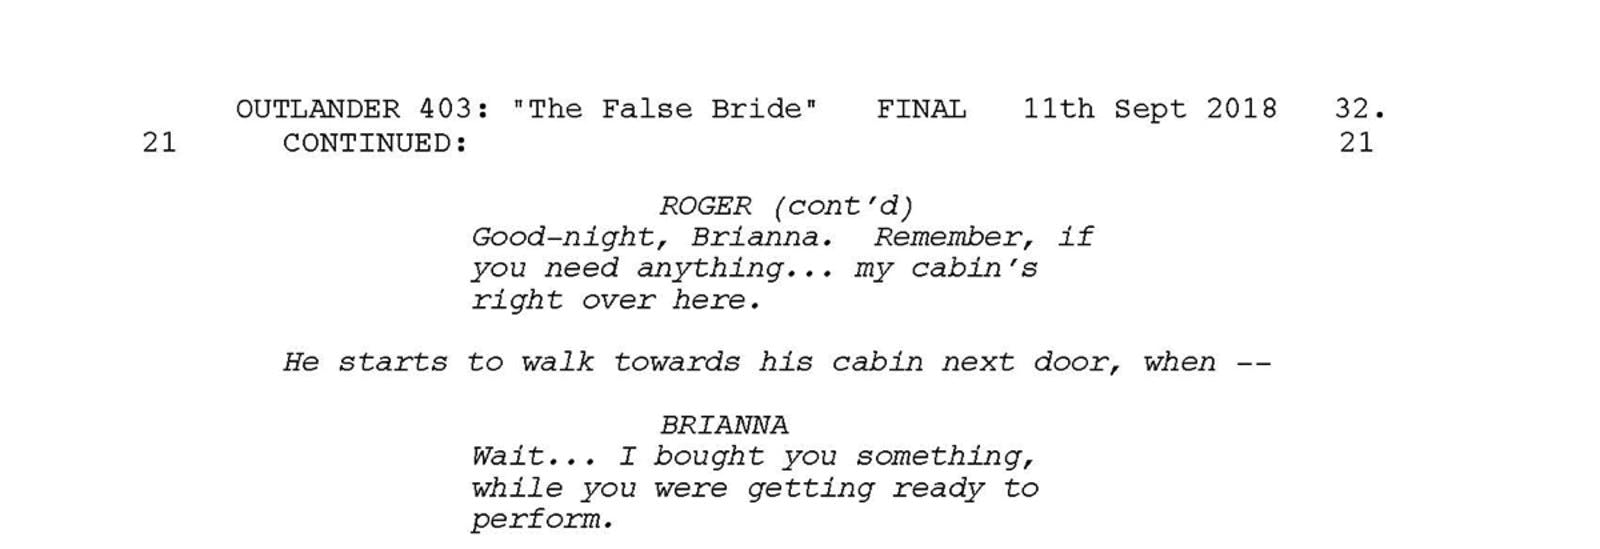 Part of the outlander script